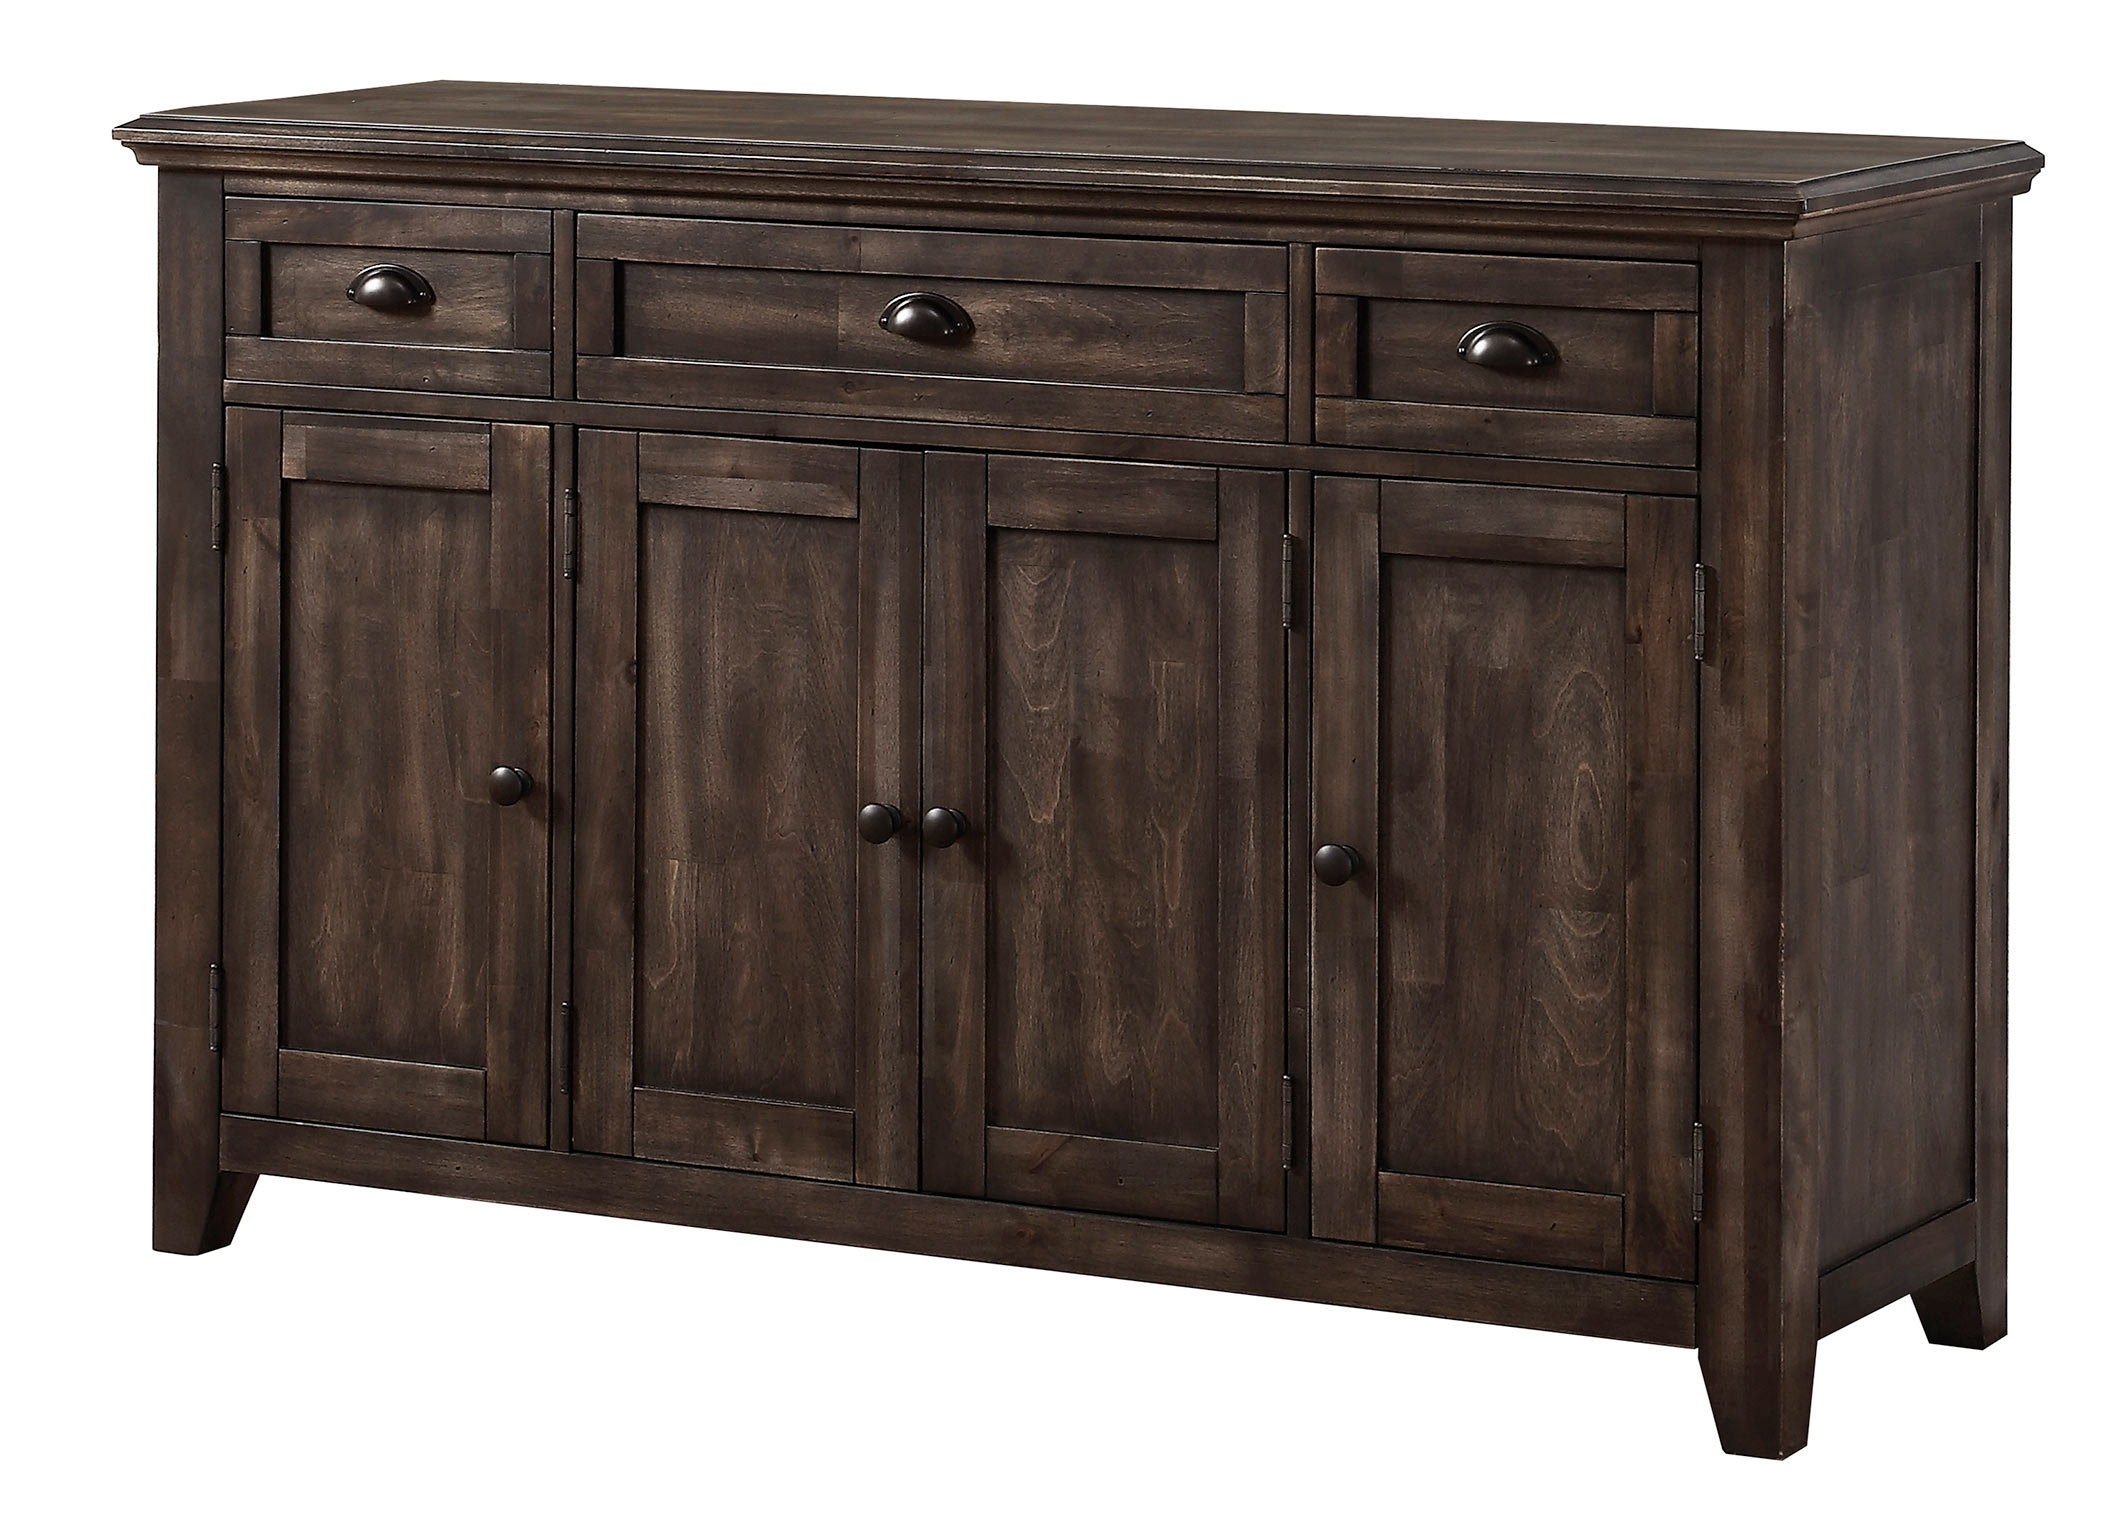 Gracie Oaks Carnmoon Sideboard | Wayfair for Parrish Sideboards (Image 13 of 30)